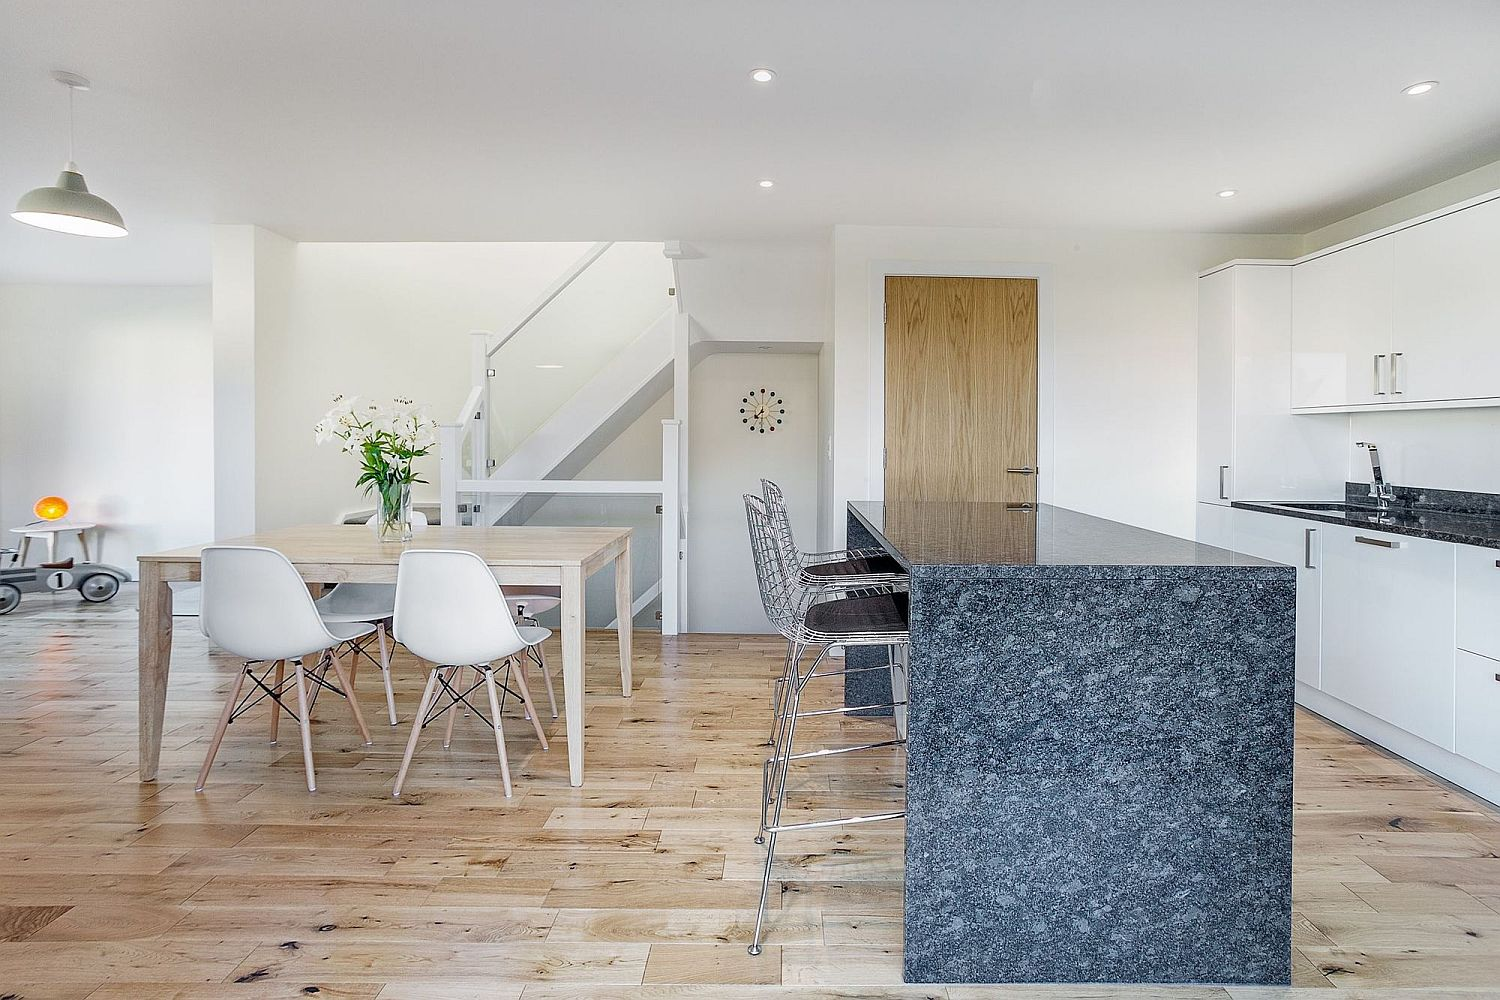 Contemporary interior of the homes in white and wood with smart stone island